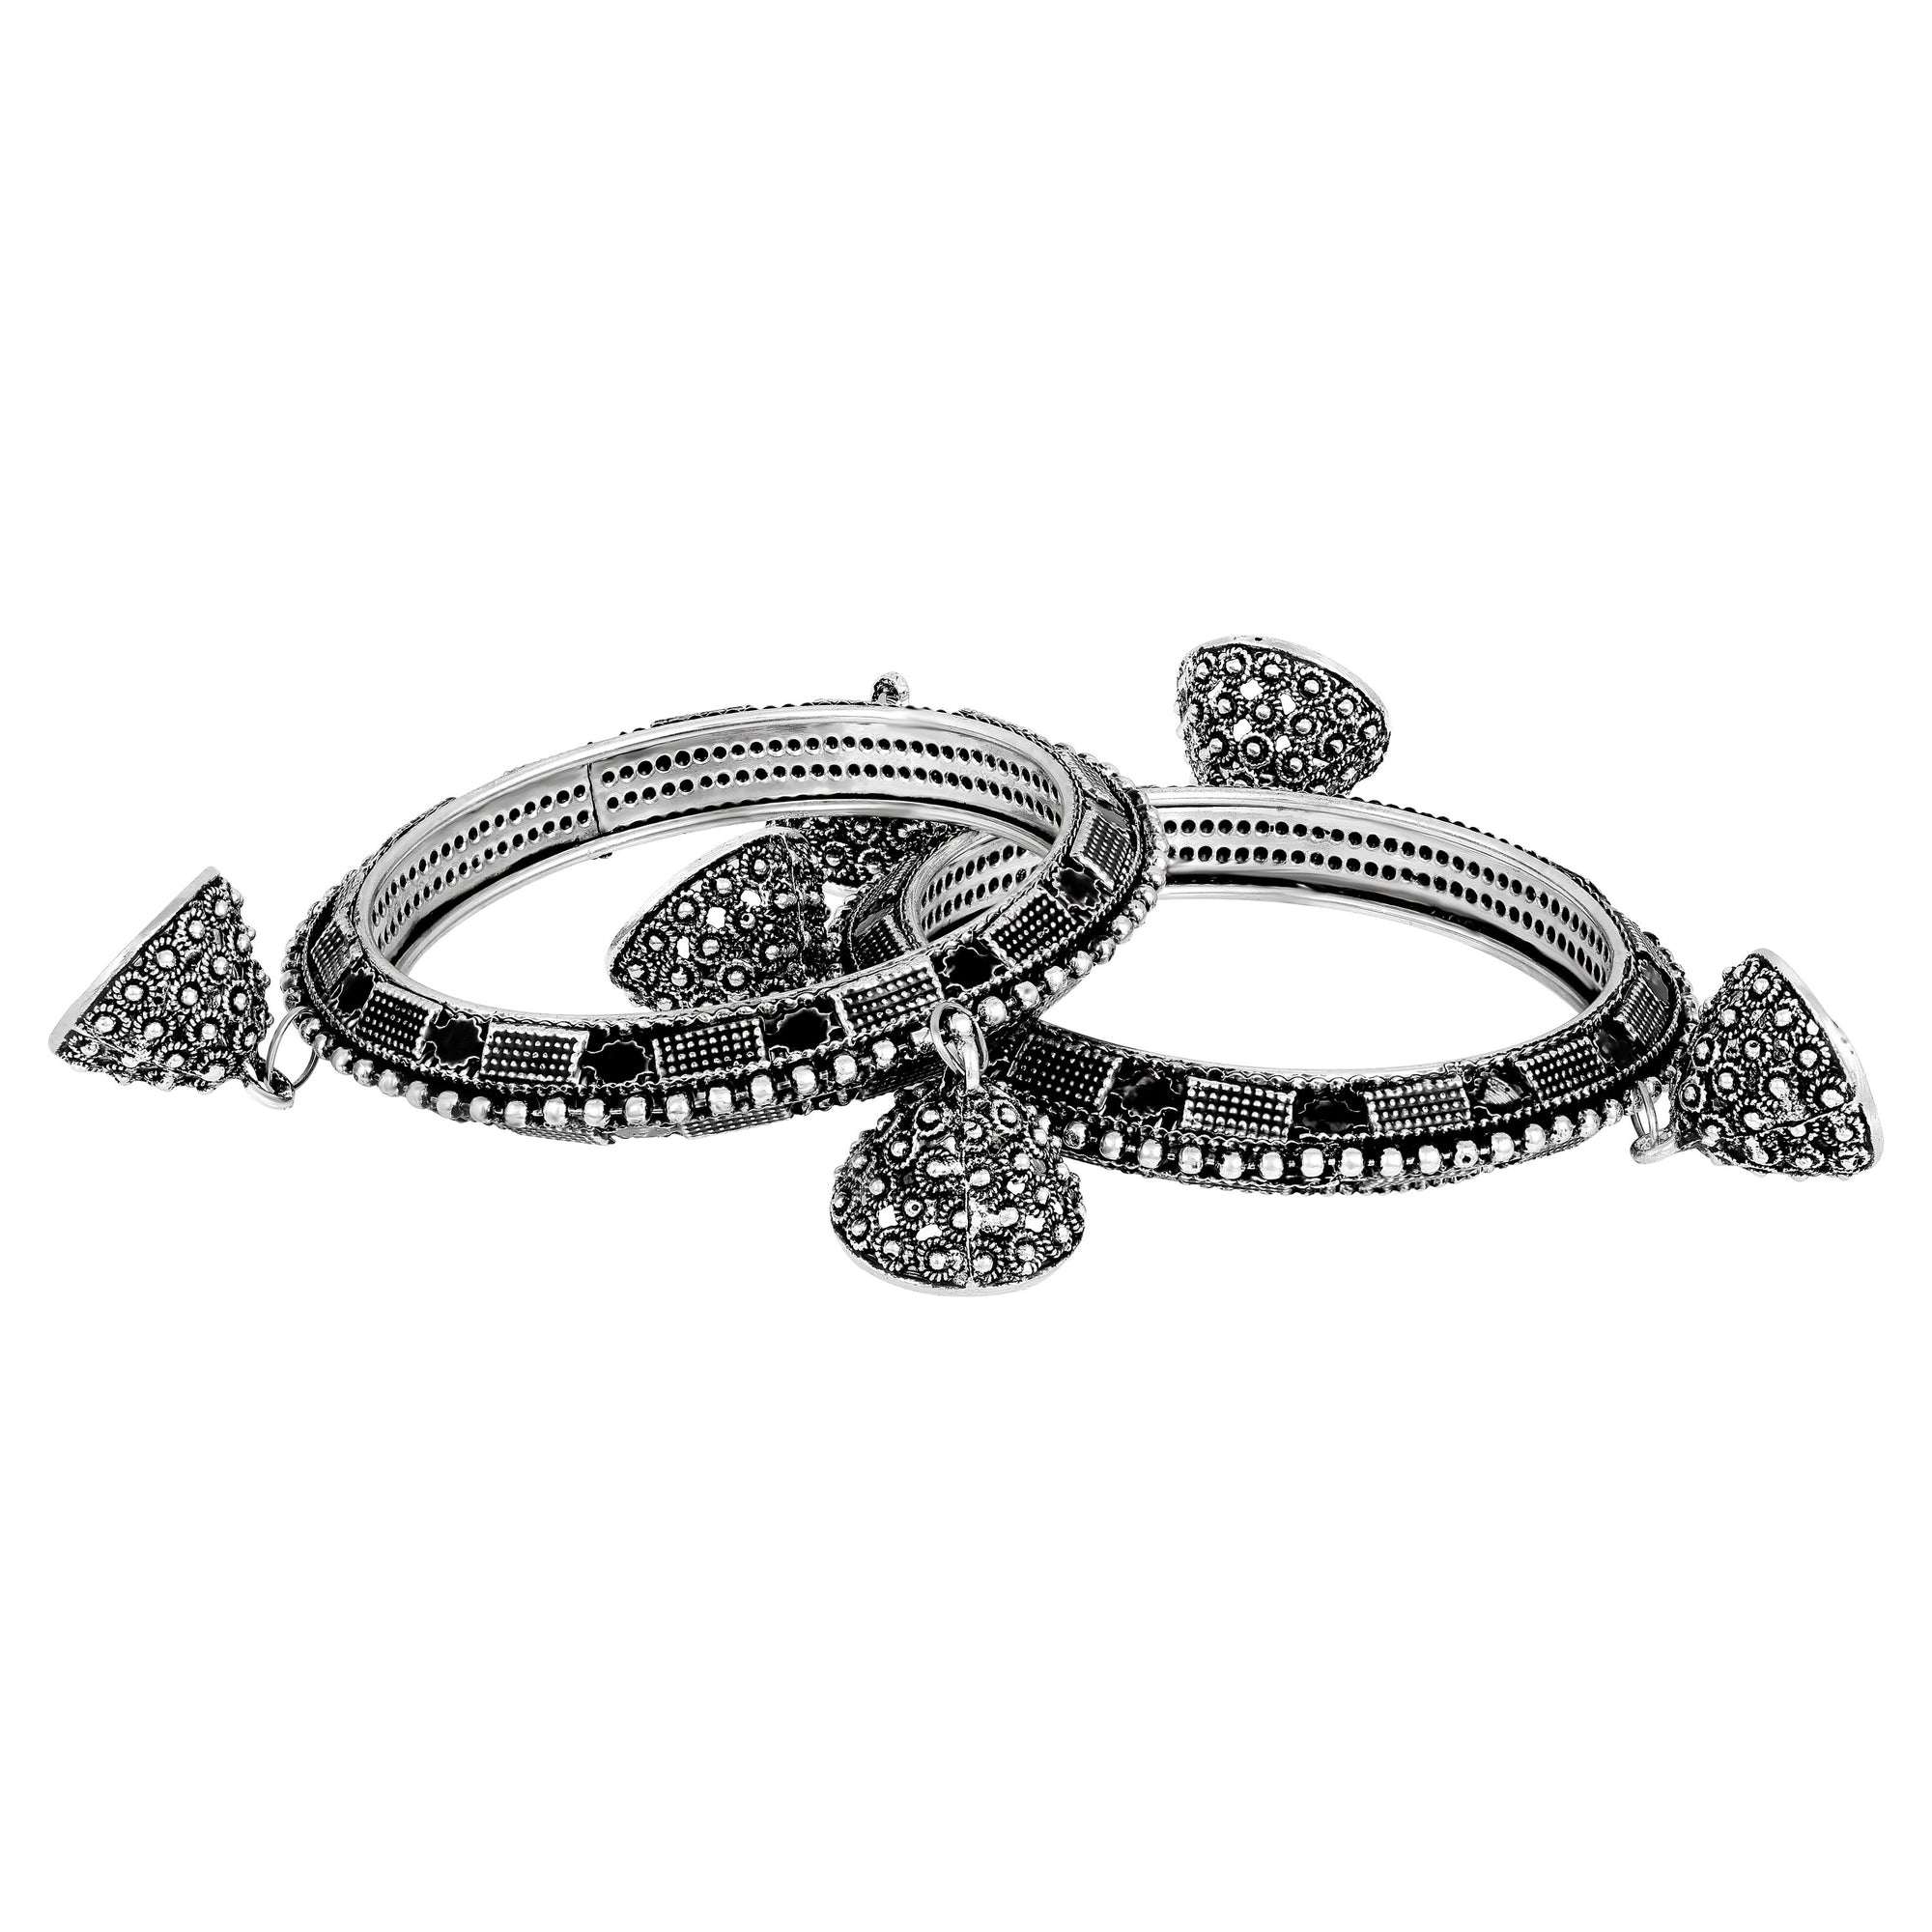 Asmitta Jewellery Silver Brass Bangle Set -BG349